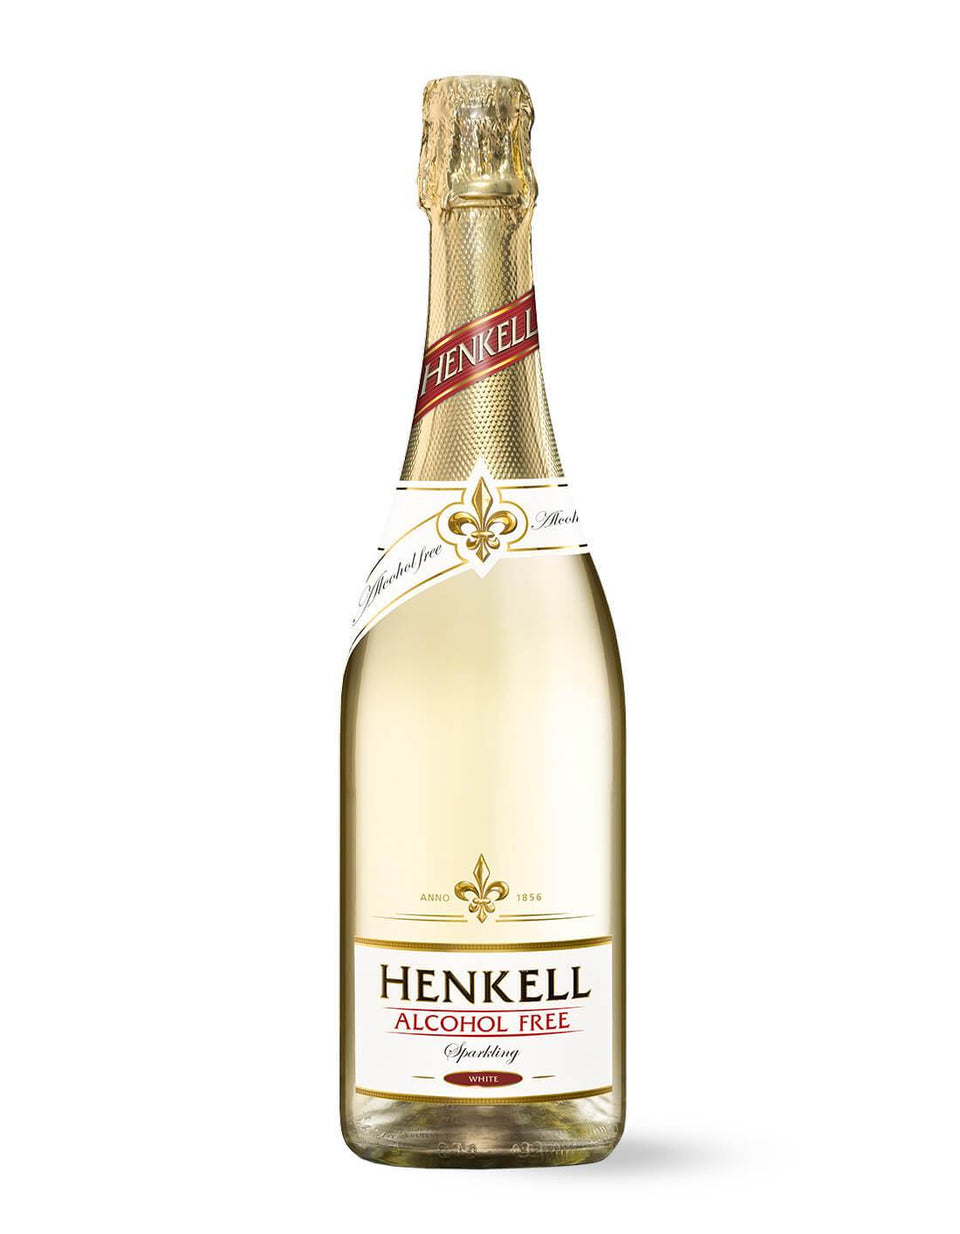 Henkell Alcohol-Free Sparkling Wine 750mL - Craftzero